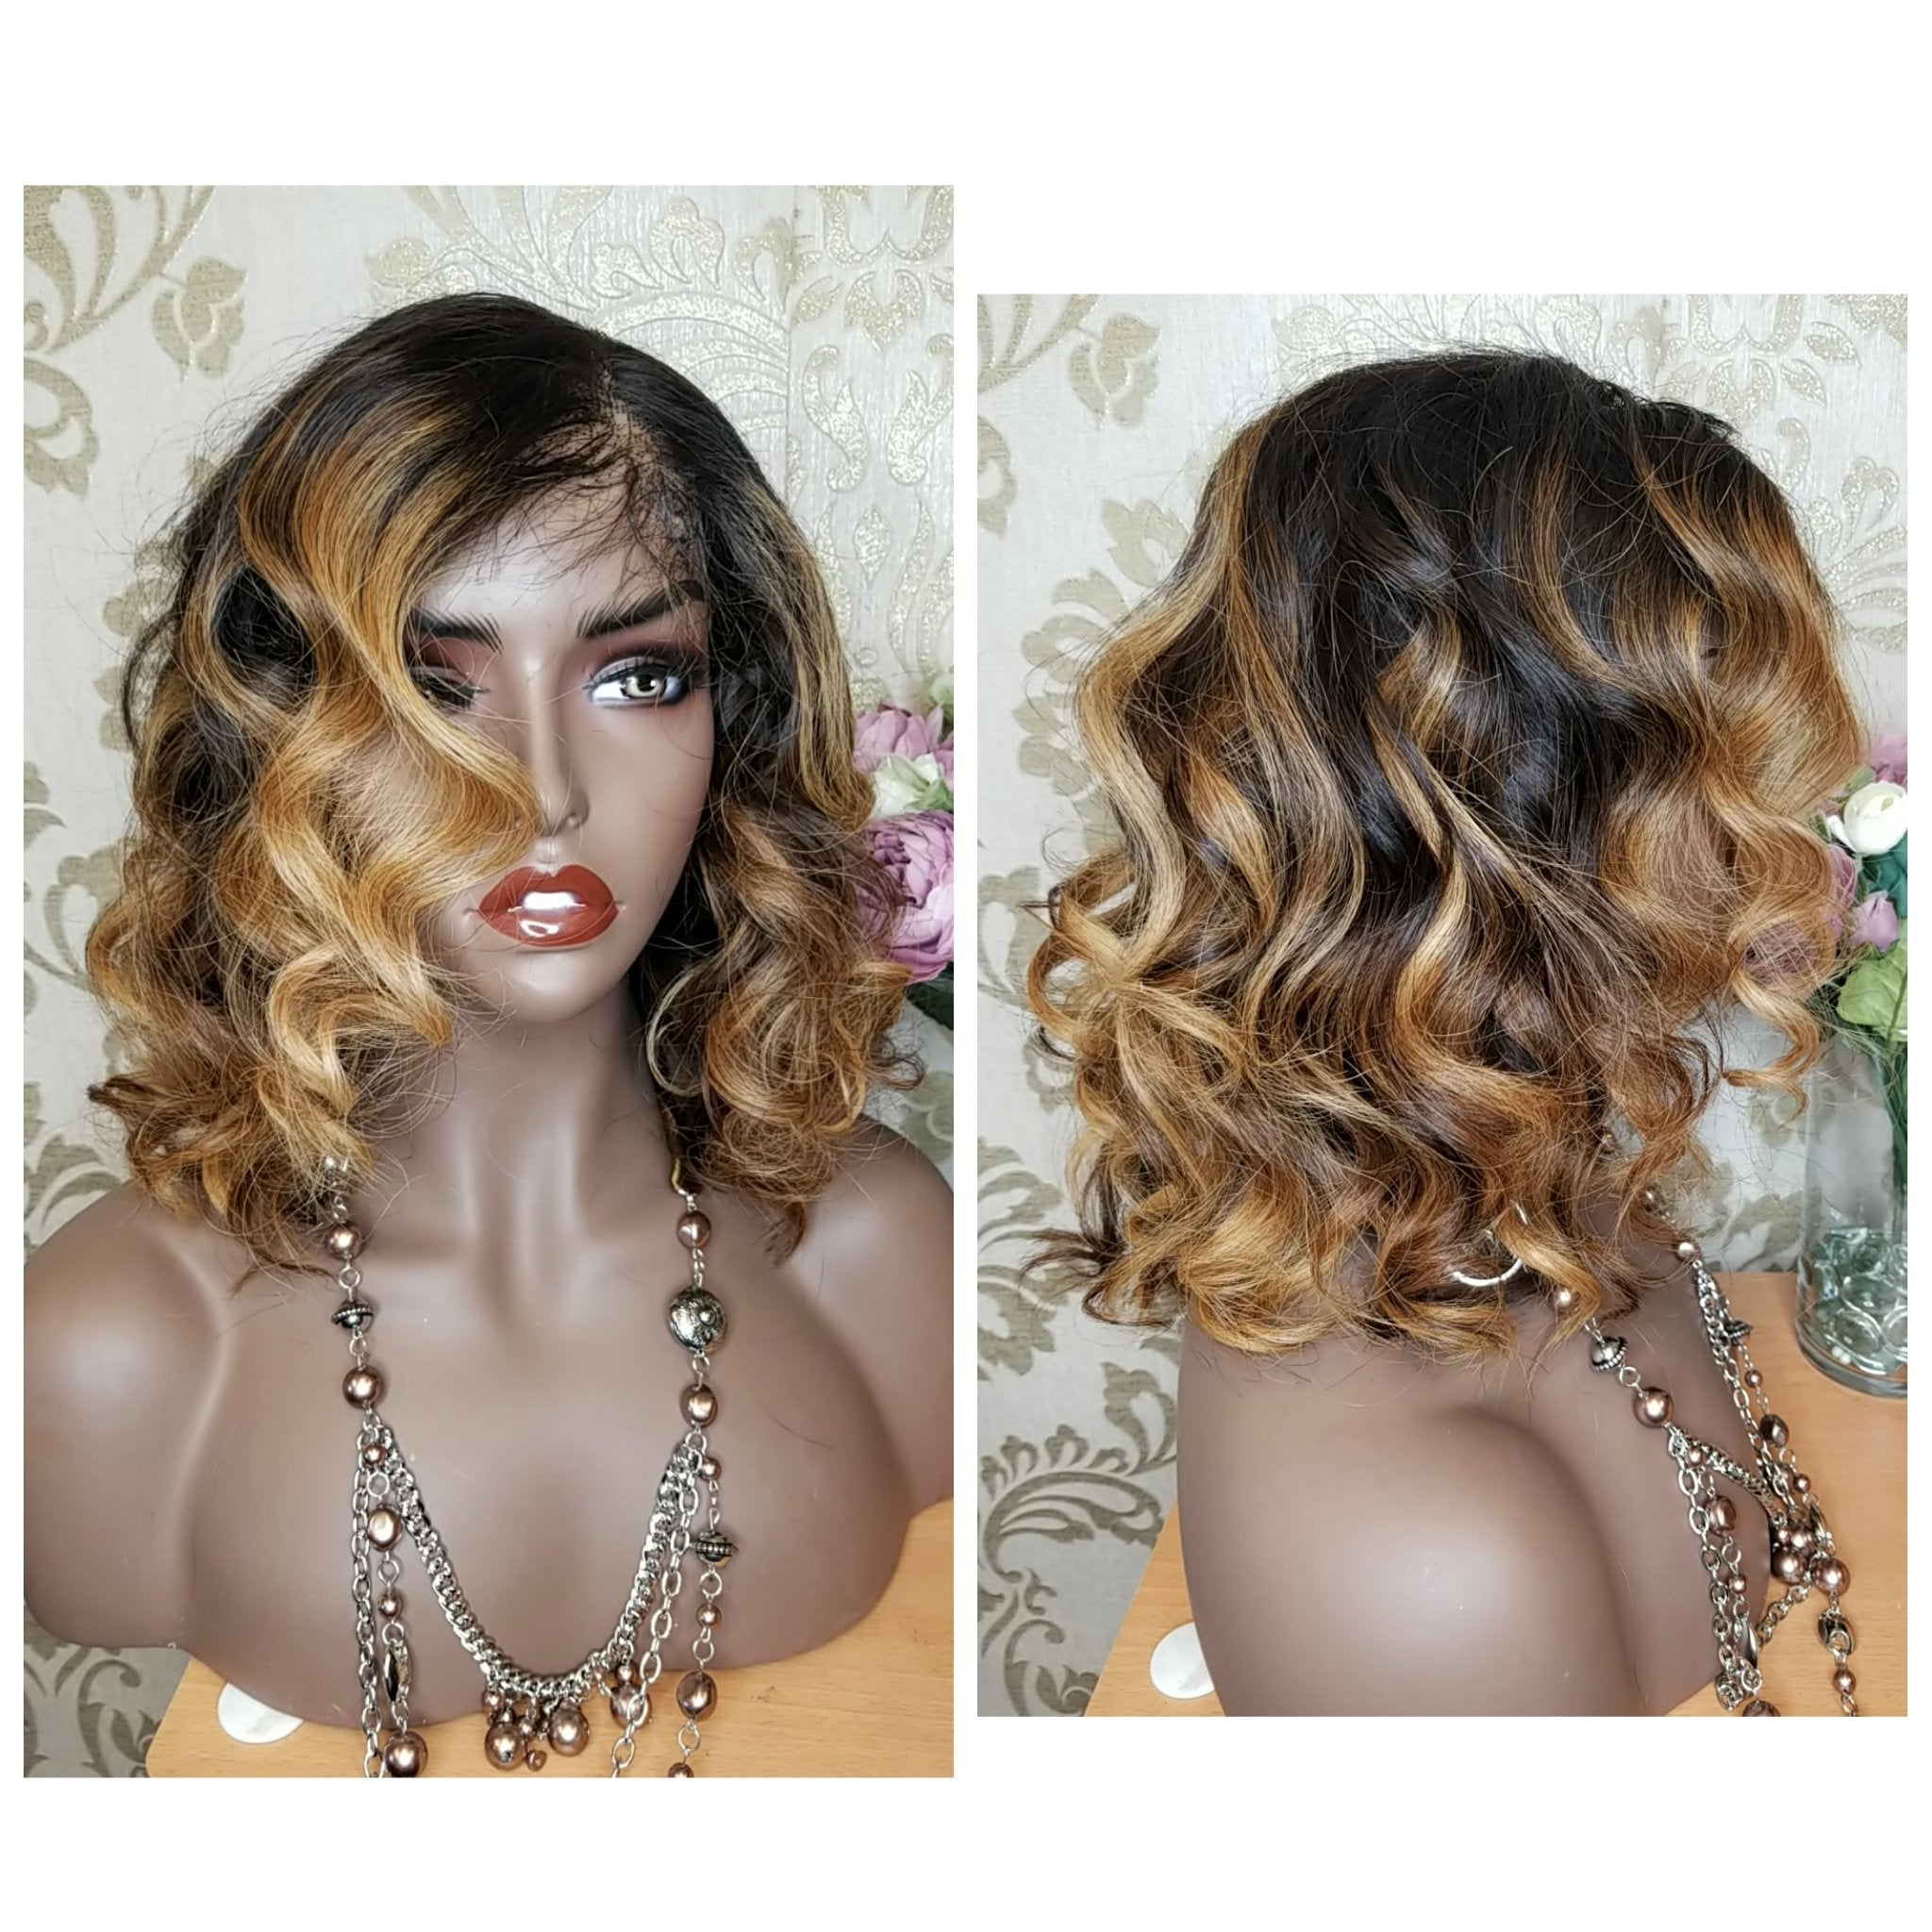 Glueless Claressa Raw Cambodian Wand Curled/ Highlighted Unit